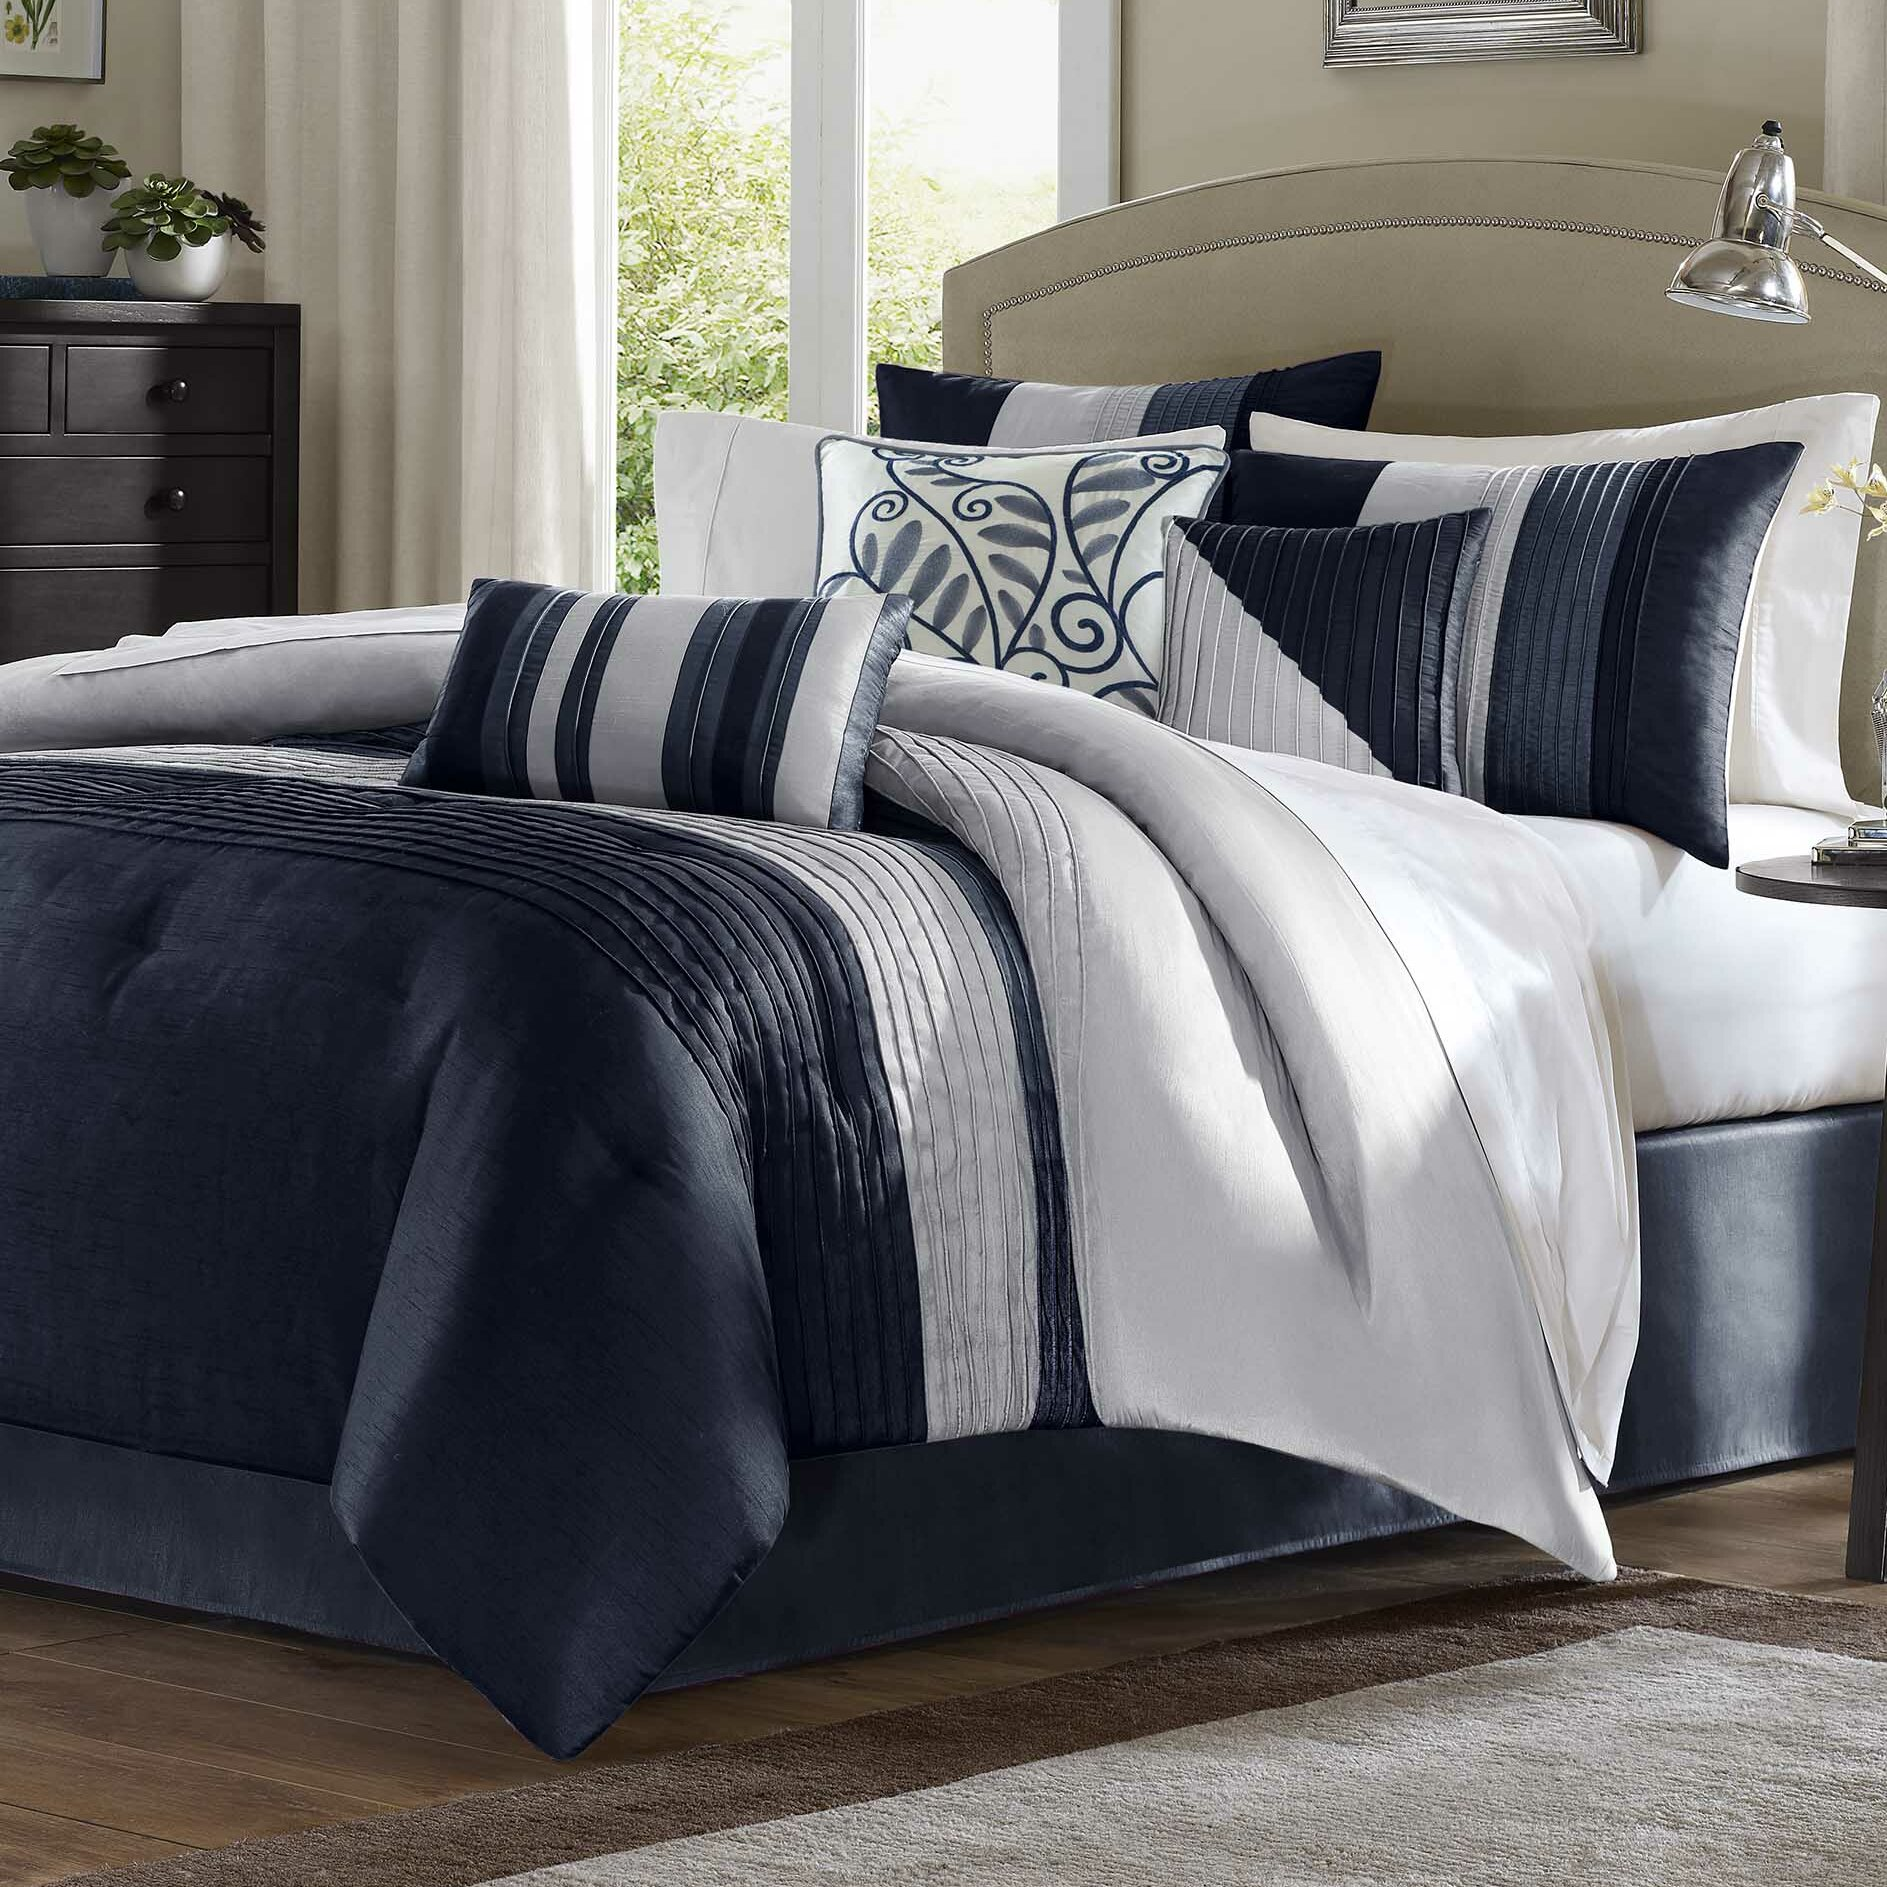 King Size Navy Comforters Sets Free Shipping Over 35 Wayfair